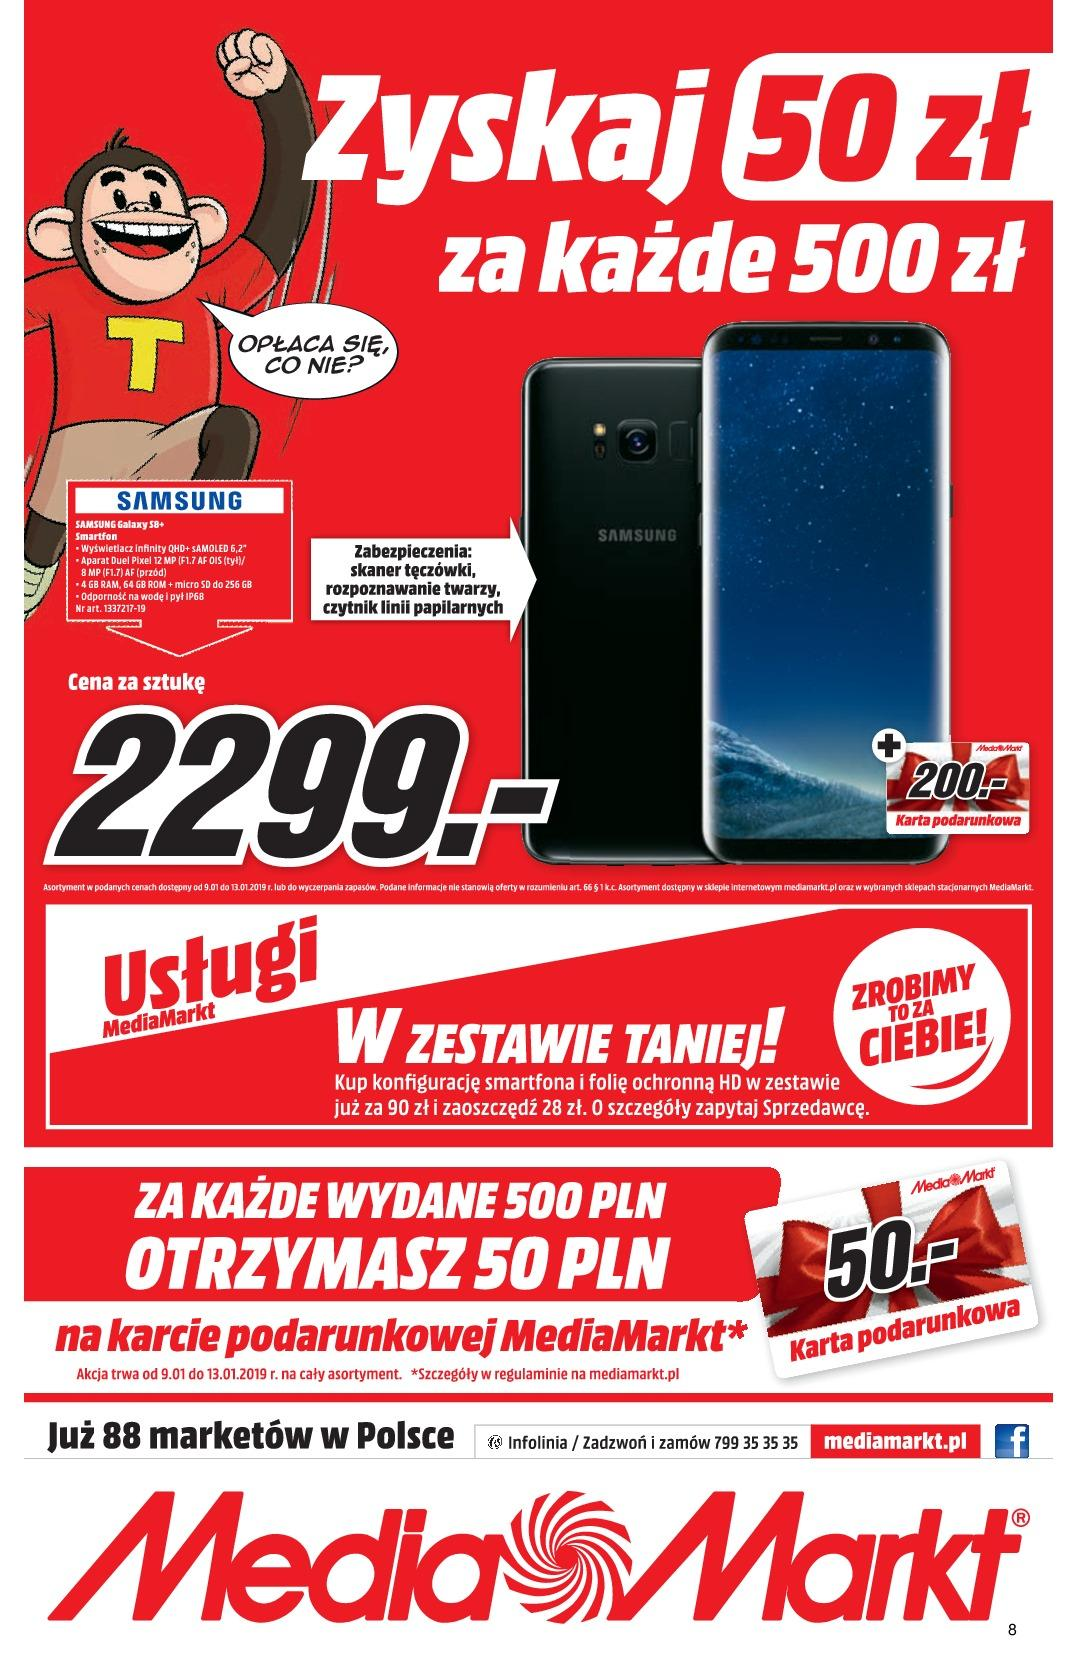 Gazetka promocyjna Media Markt do 13/01/2019 str.7